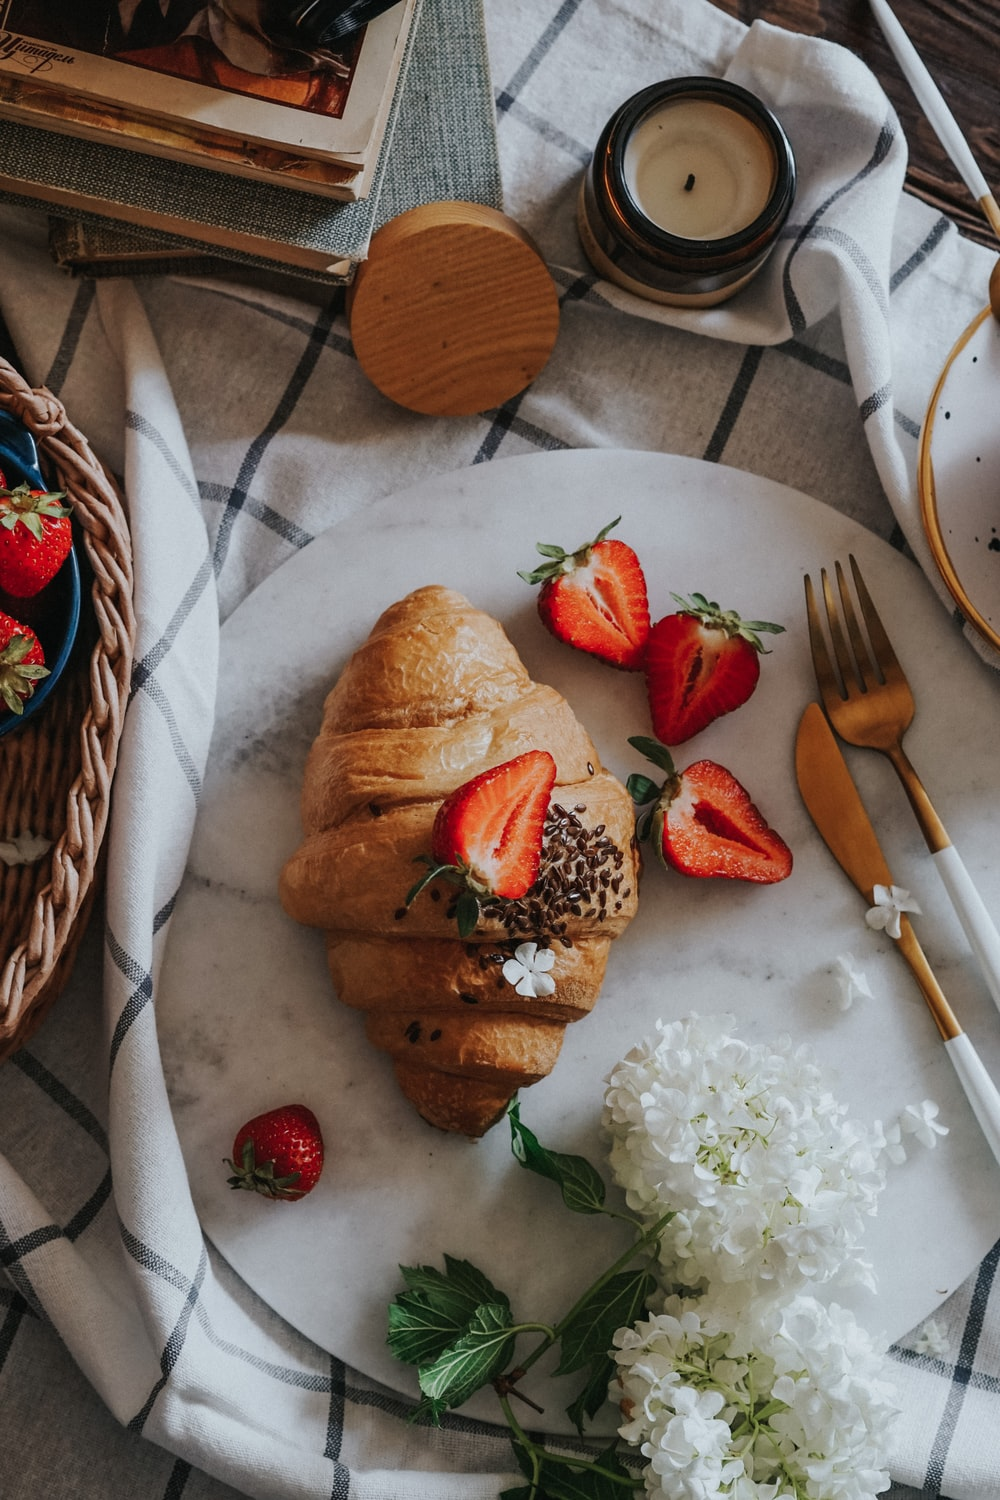 bread with sliced strawberries and green leaves on white ceramic plate